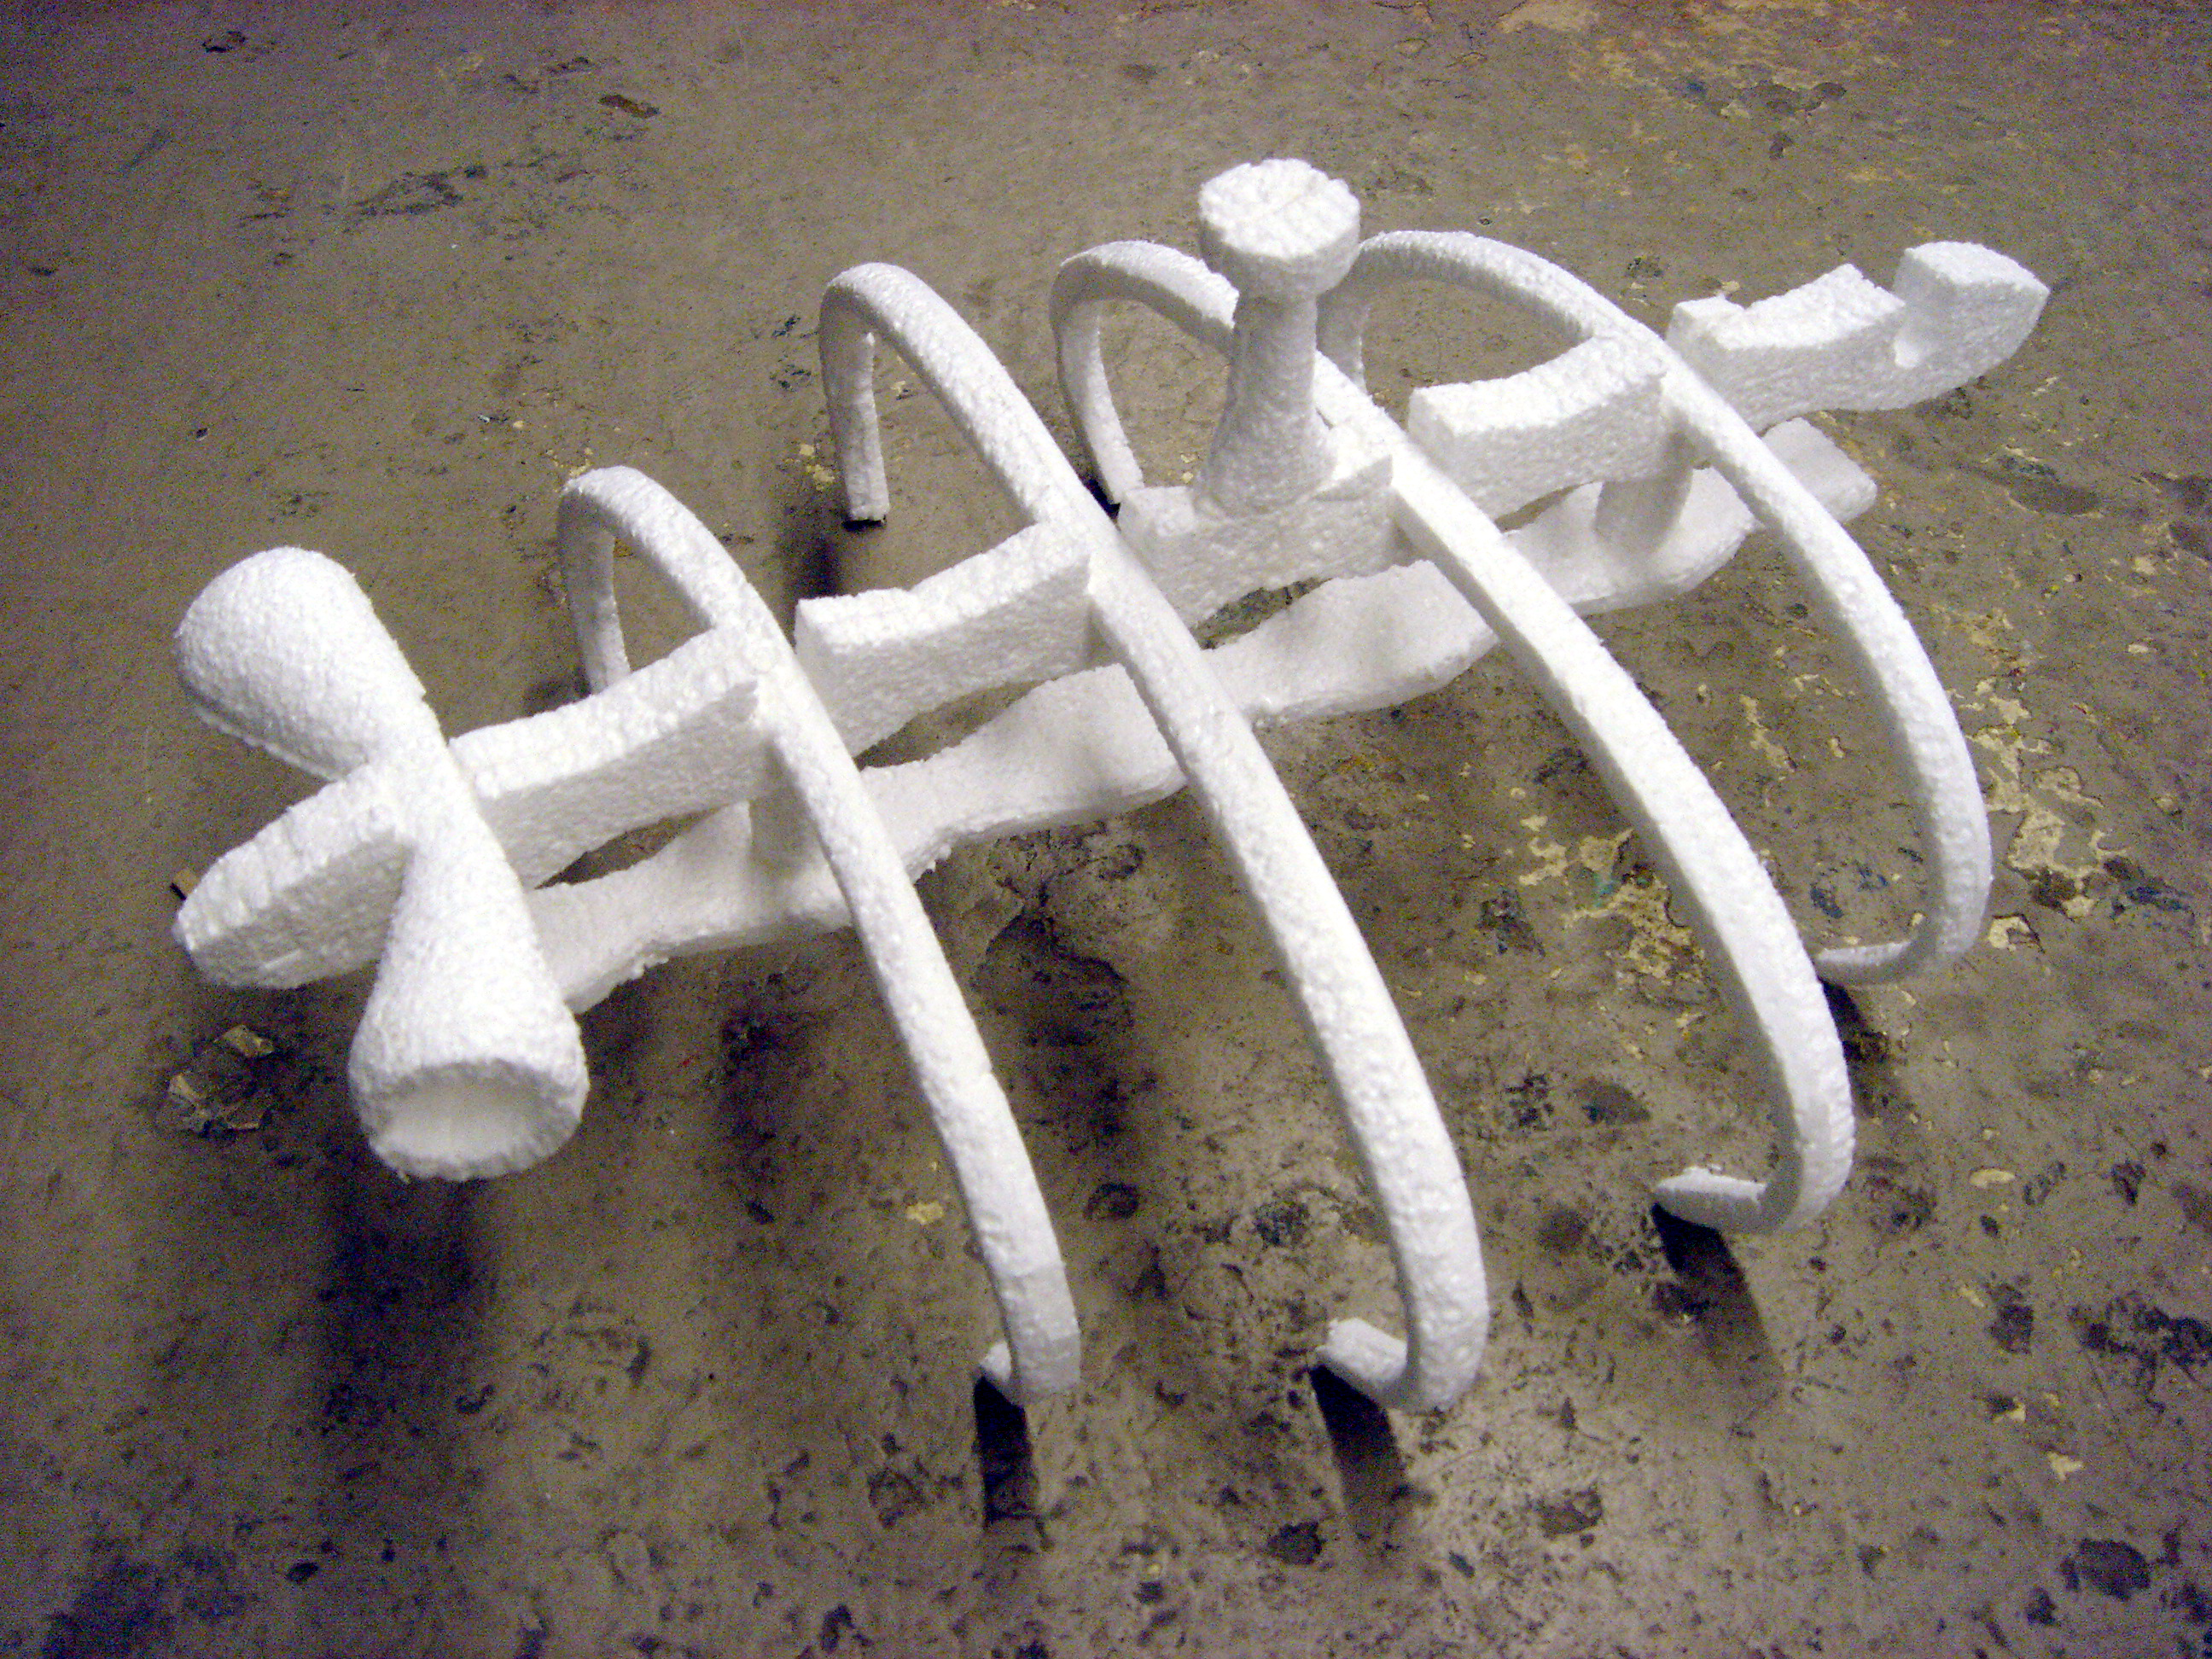 Plesiosaur light fixture, v.1, foam model (2005)